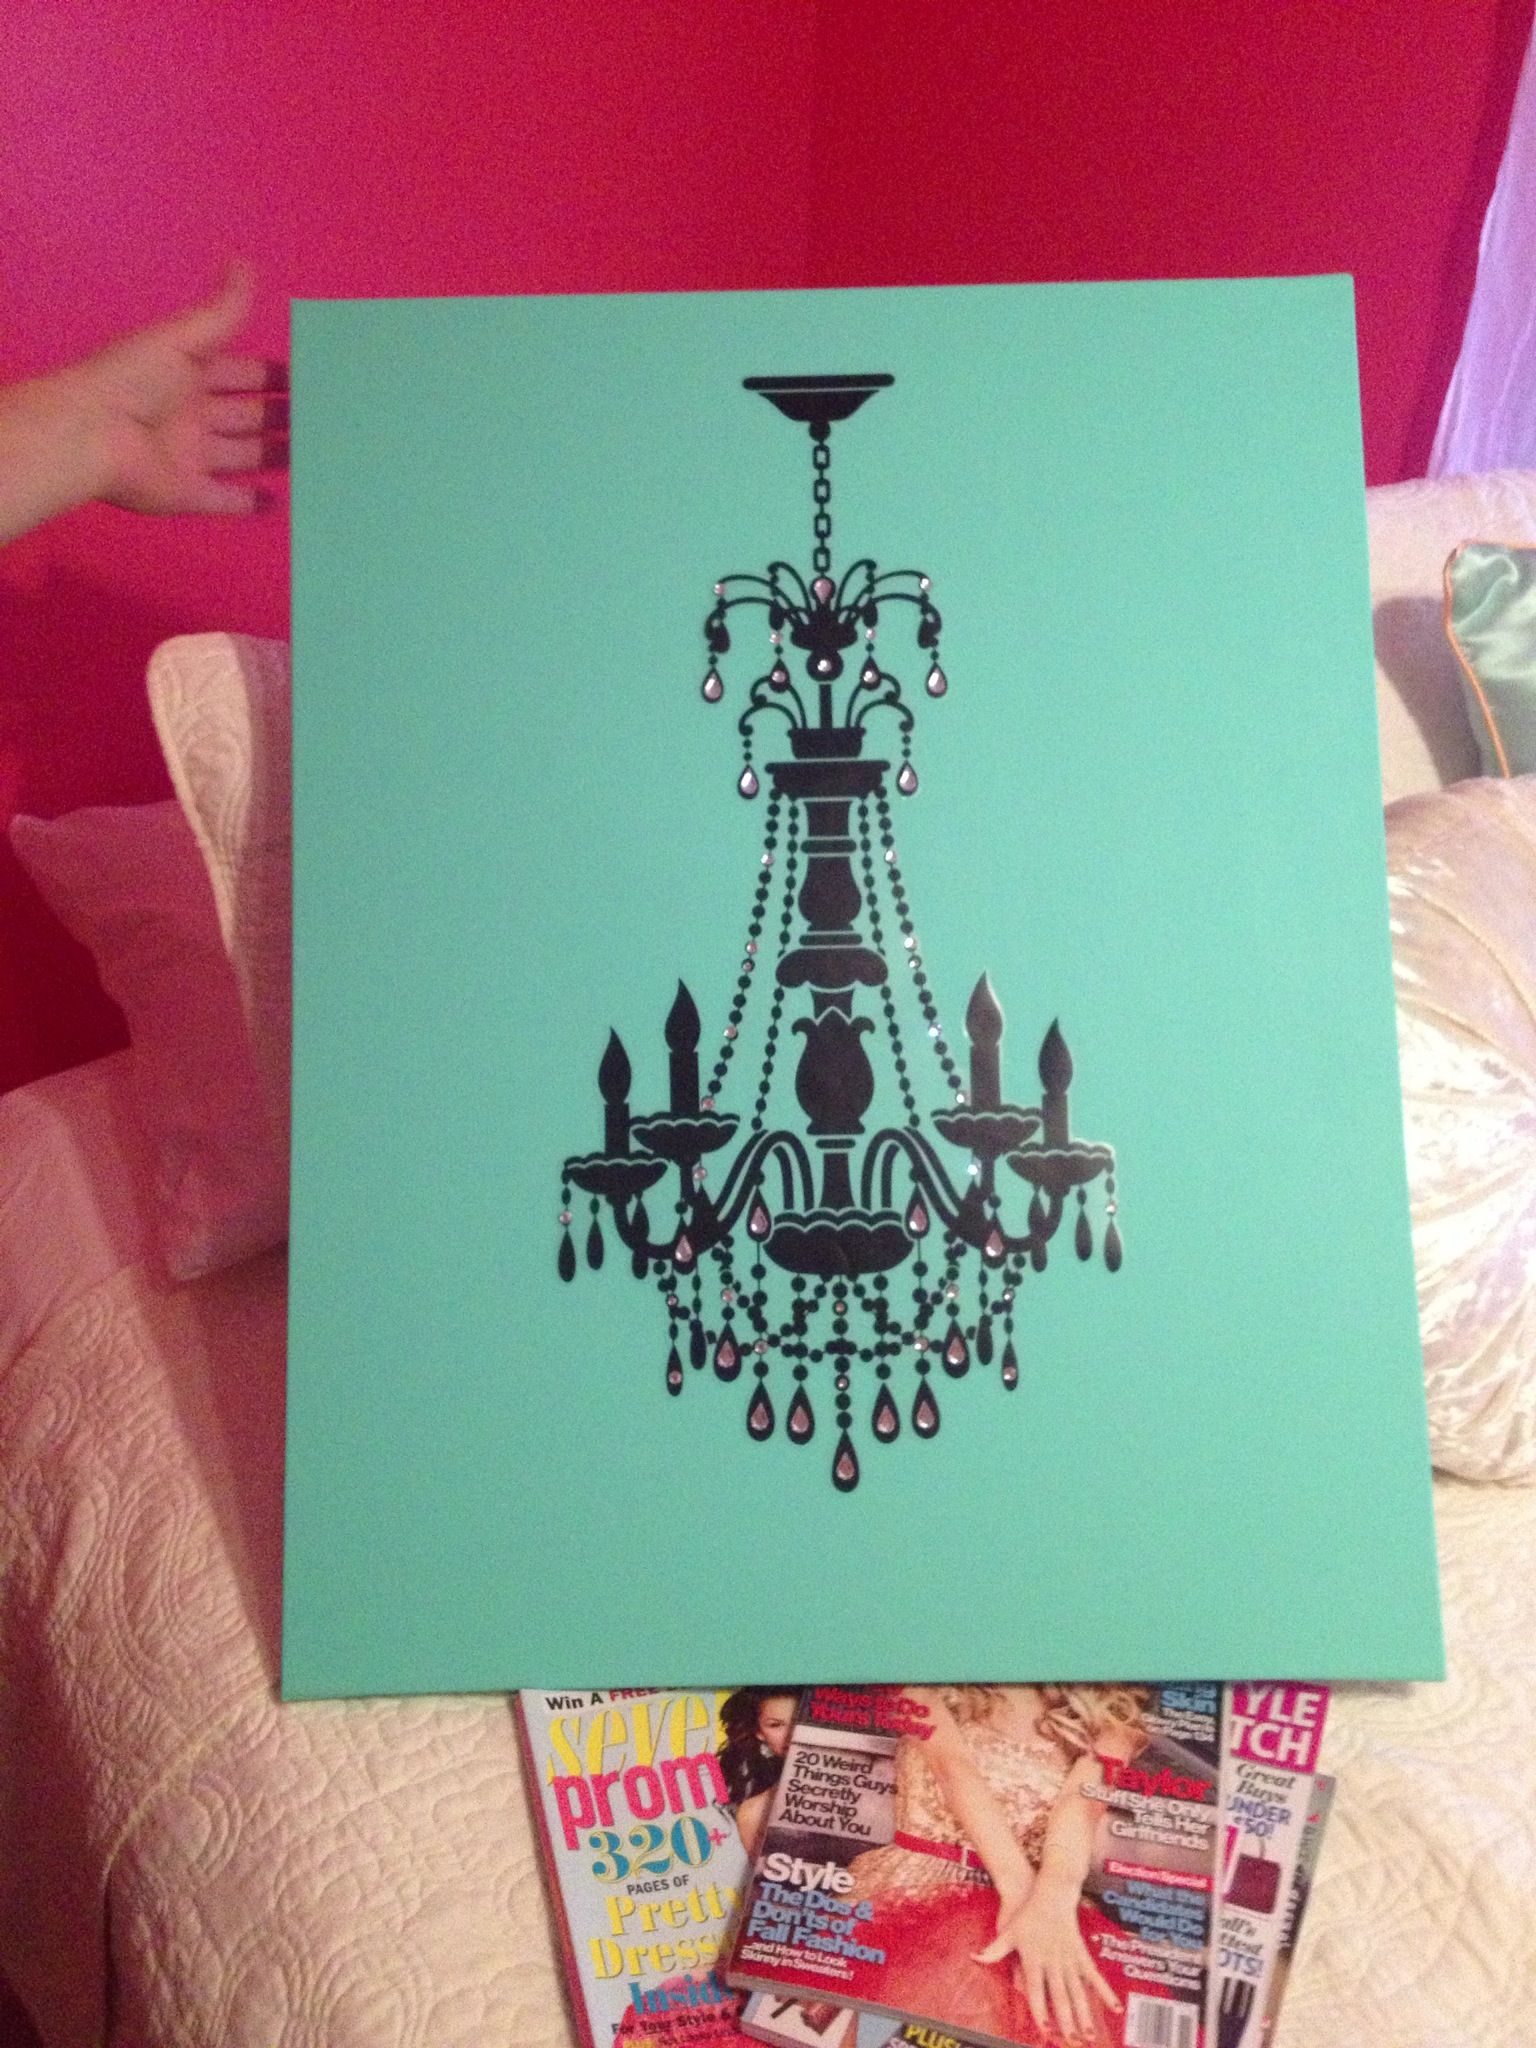 Chloe s DIY Chandelier wall art on painted turquoise canvas